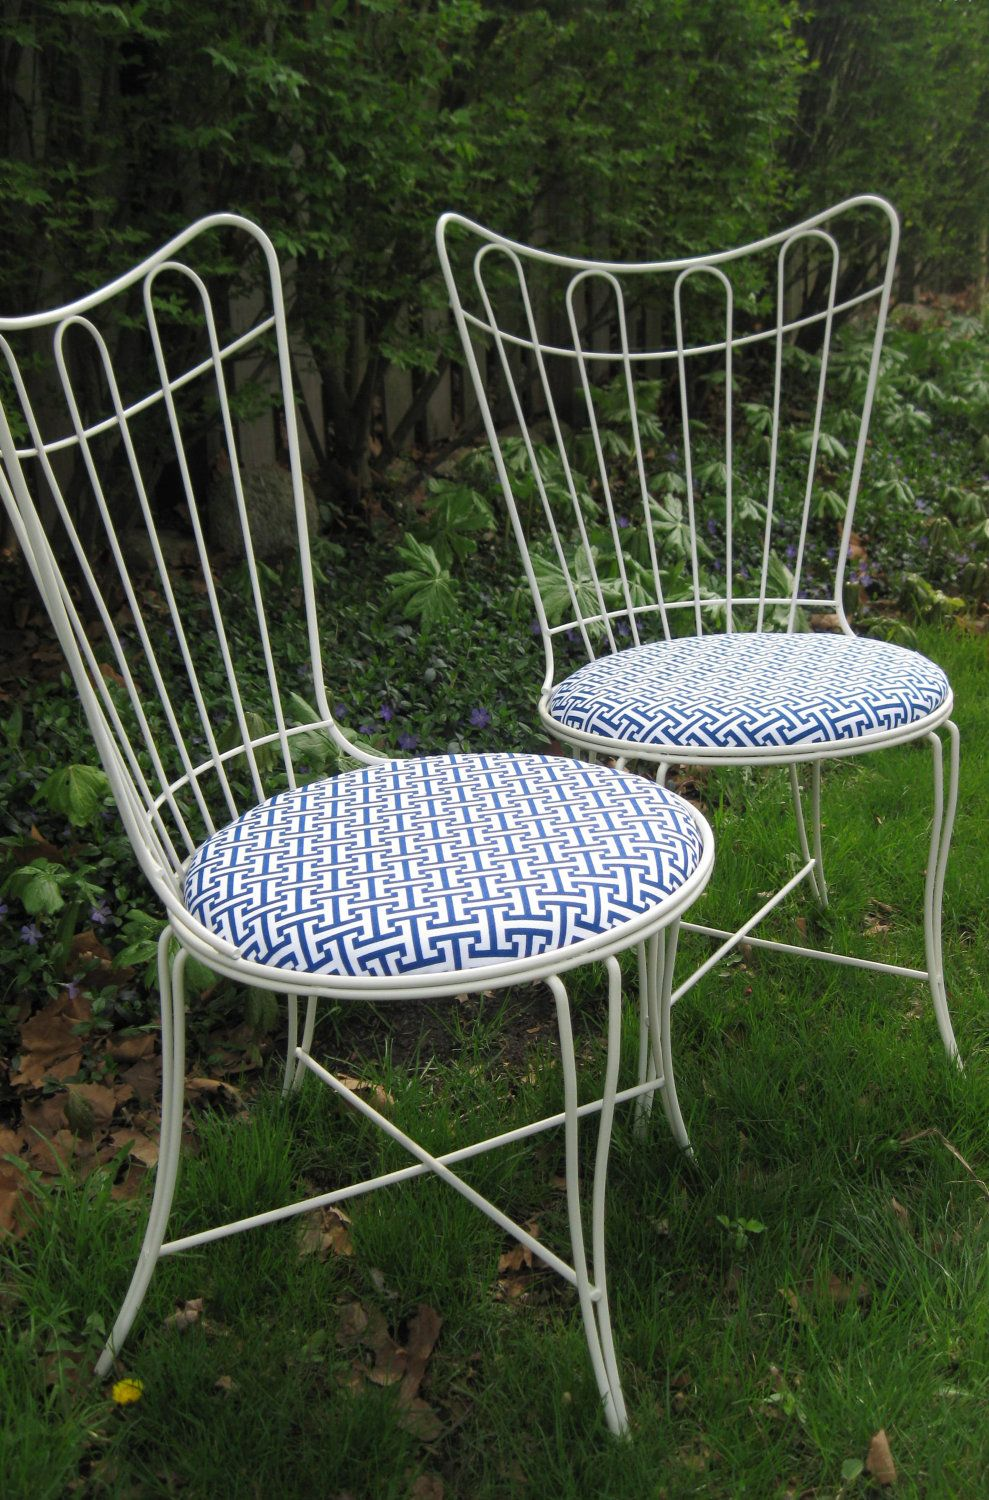 I Just Bought Four Of These Exact Chairs At A Thrift Shop For $35 Each    SCORE! Vintage Metal Cafe Chairs With Upholstered Seats SHIPPING INCLUDED.